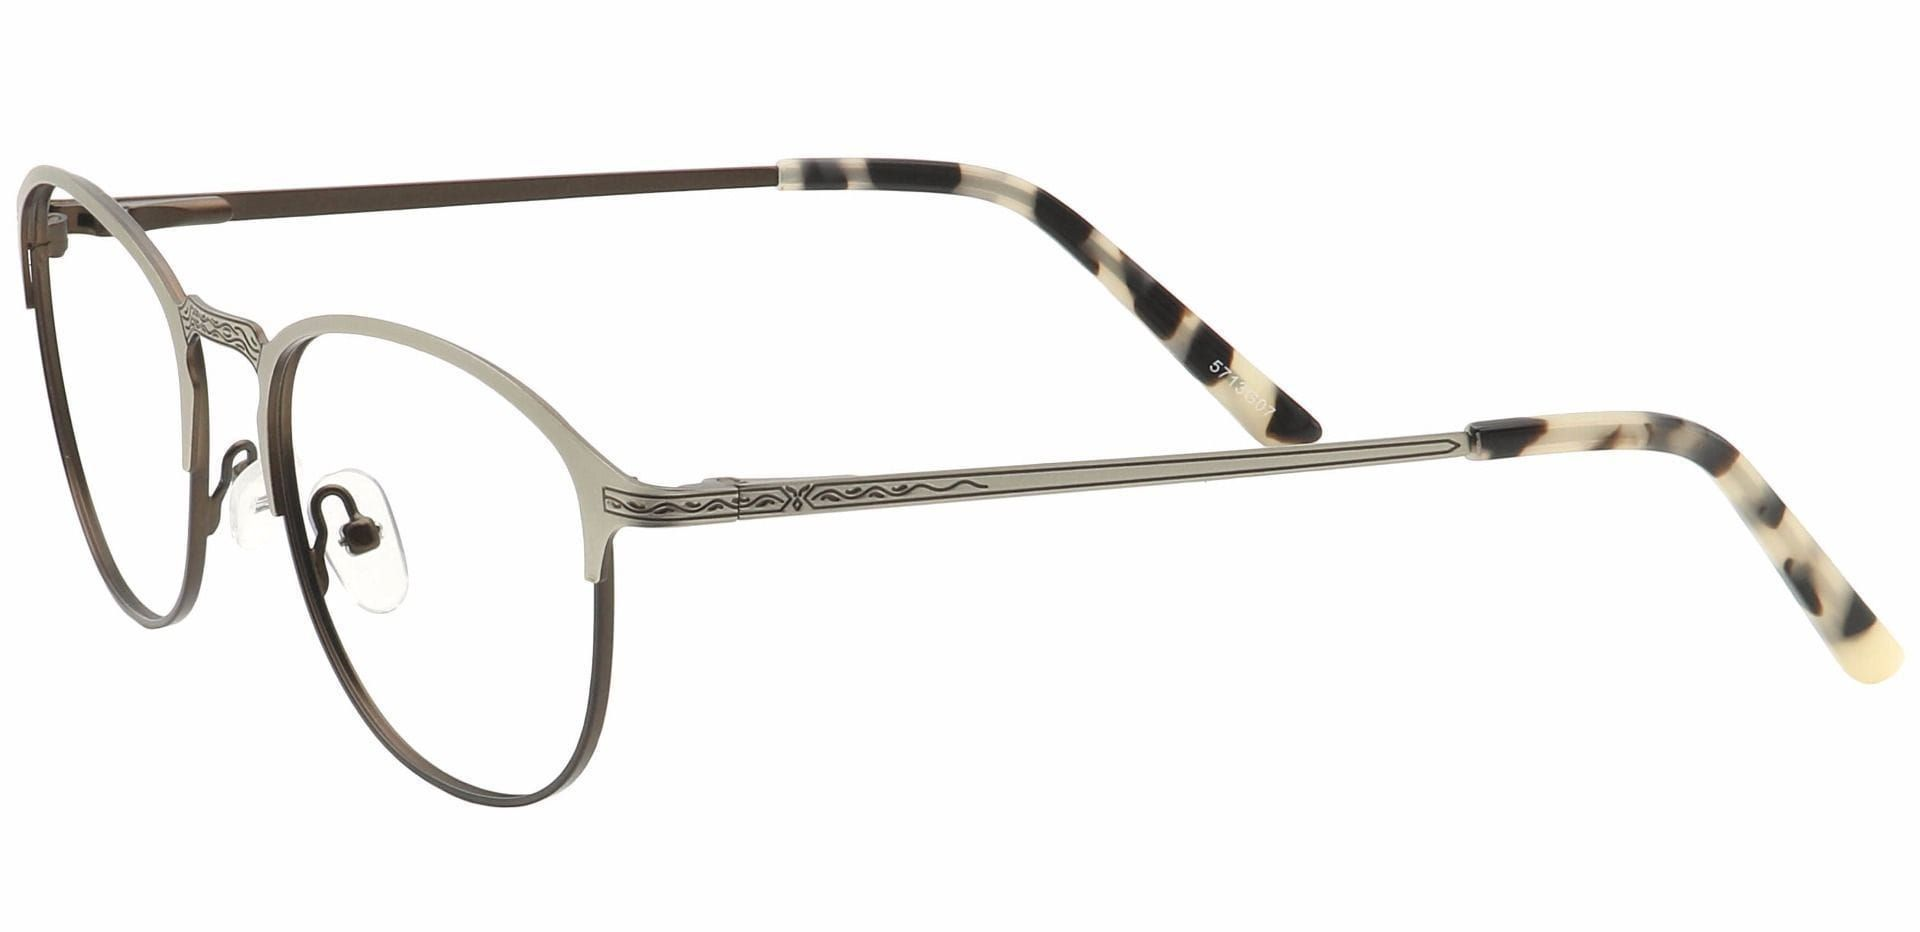 Mari Round Eyeglasses Frame - Brown